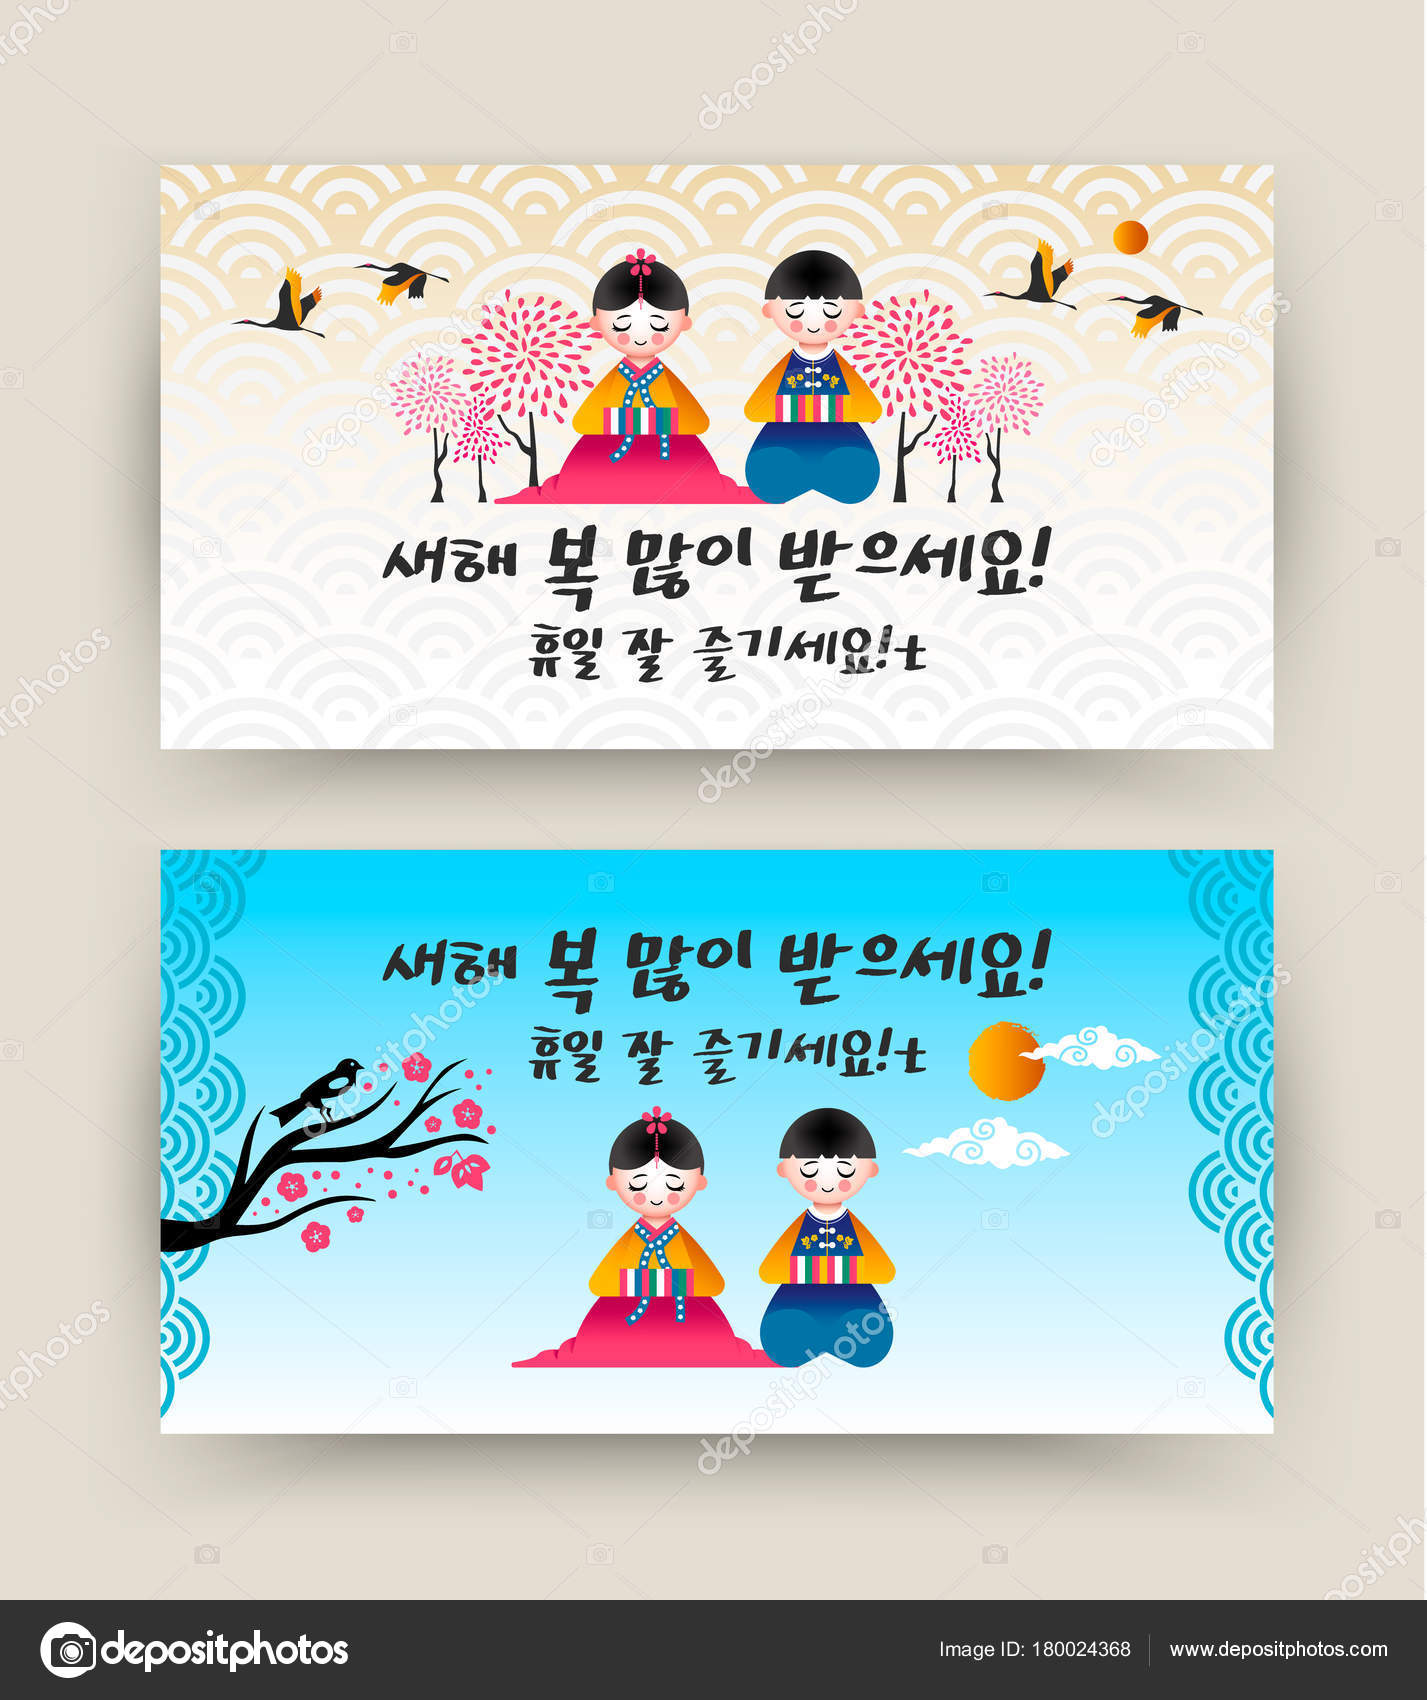 Happy korean new year 2018 banner set cute kids hanbok stock happy korean new year 2018 banner set with cute kids in hanbok dress bowing to the holidays includes traditional calligraphy message for good fortune and m4hsunfo